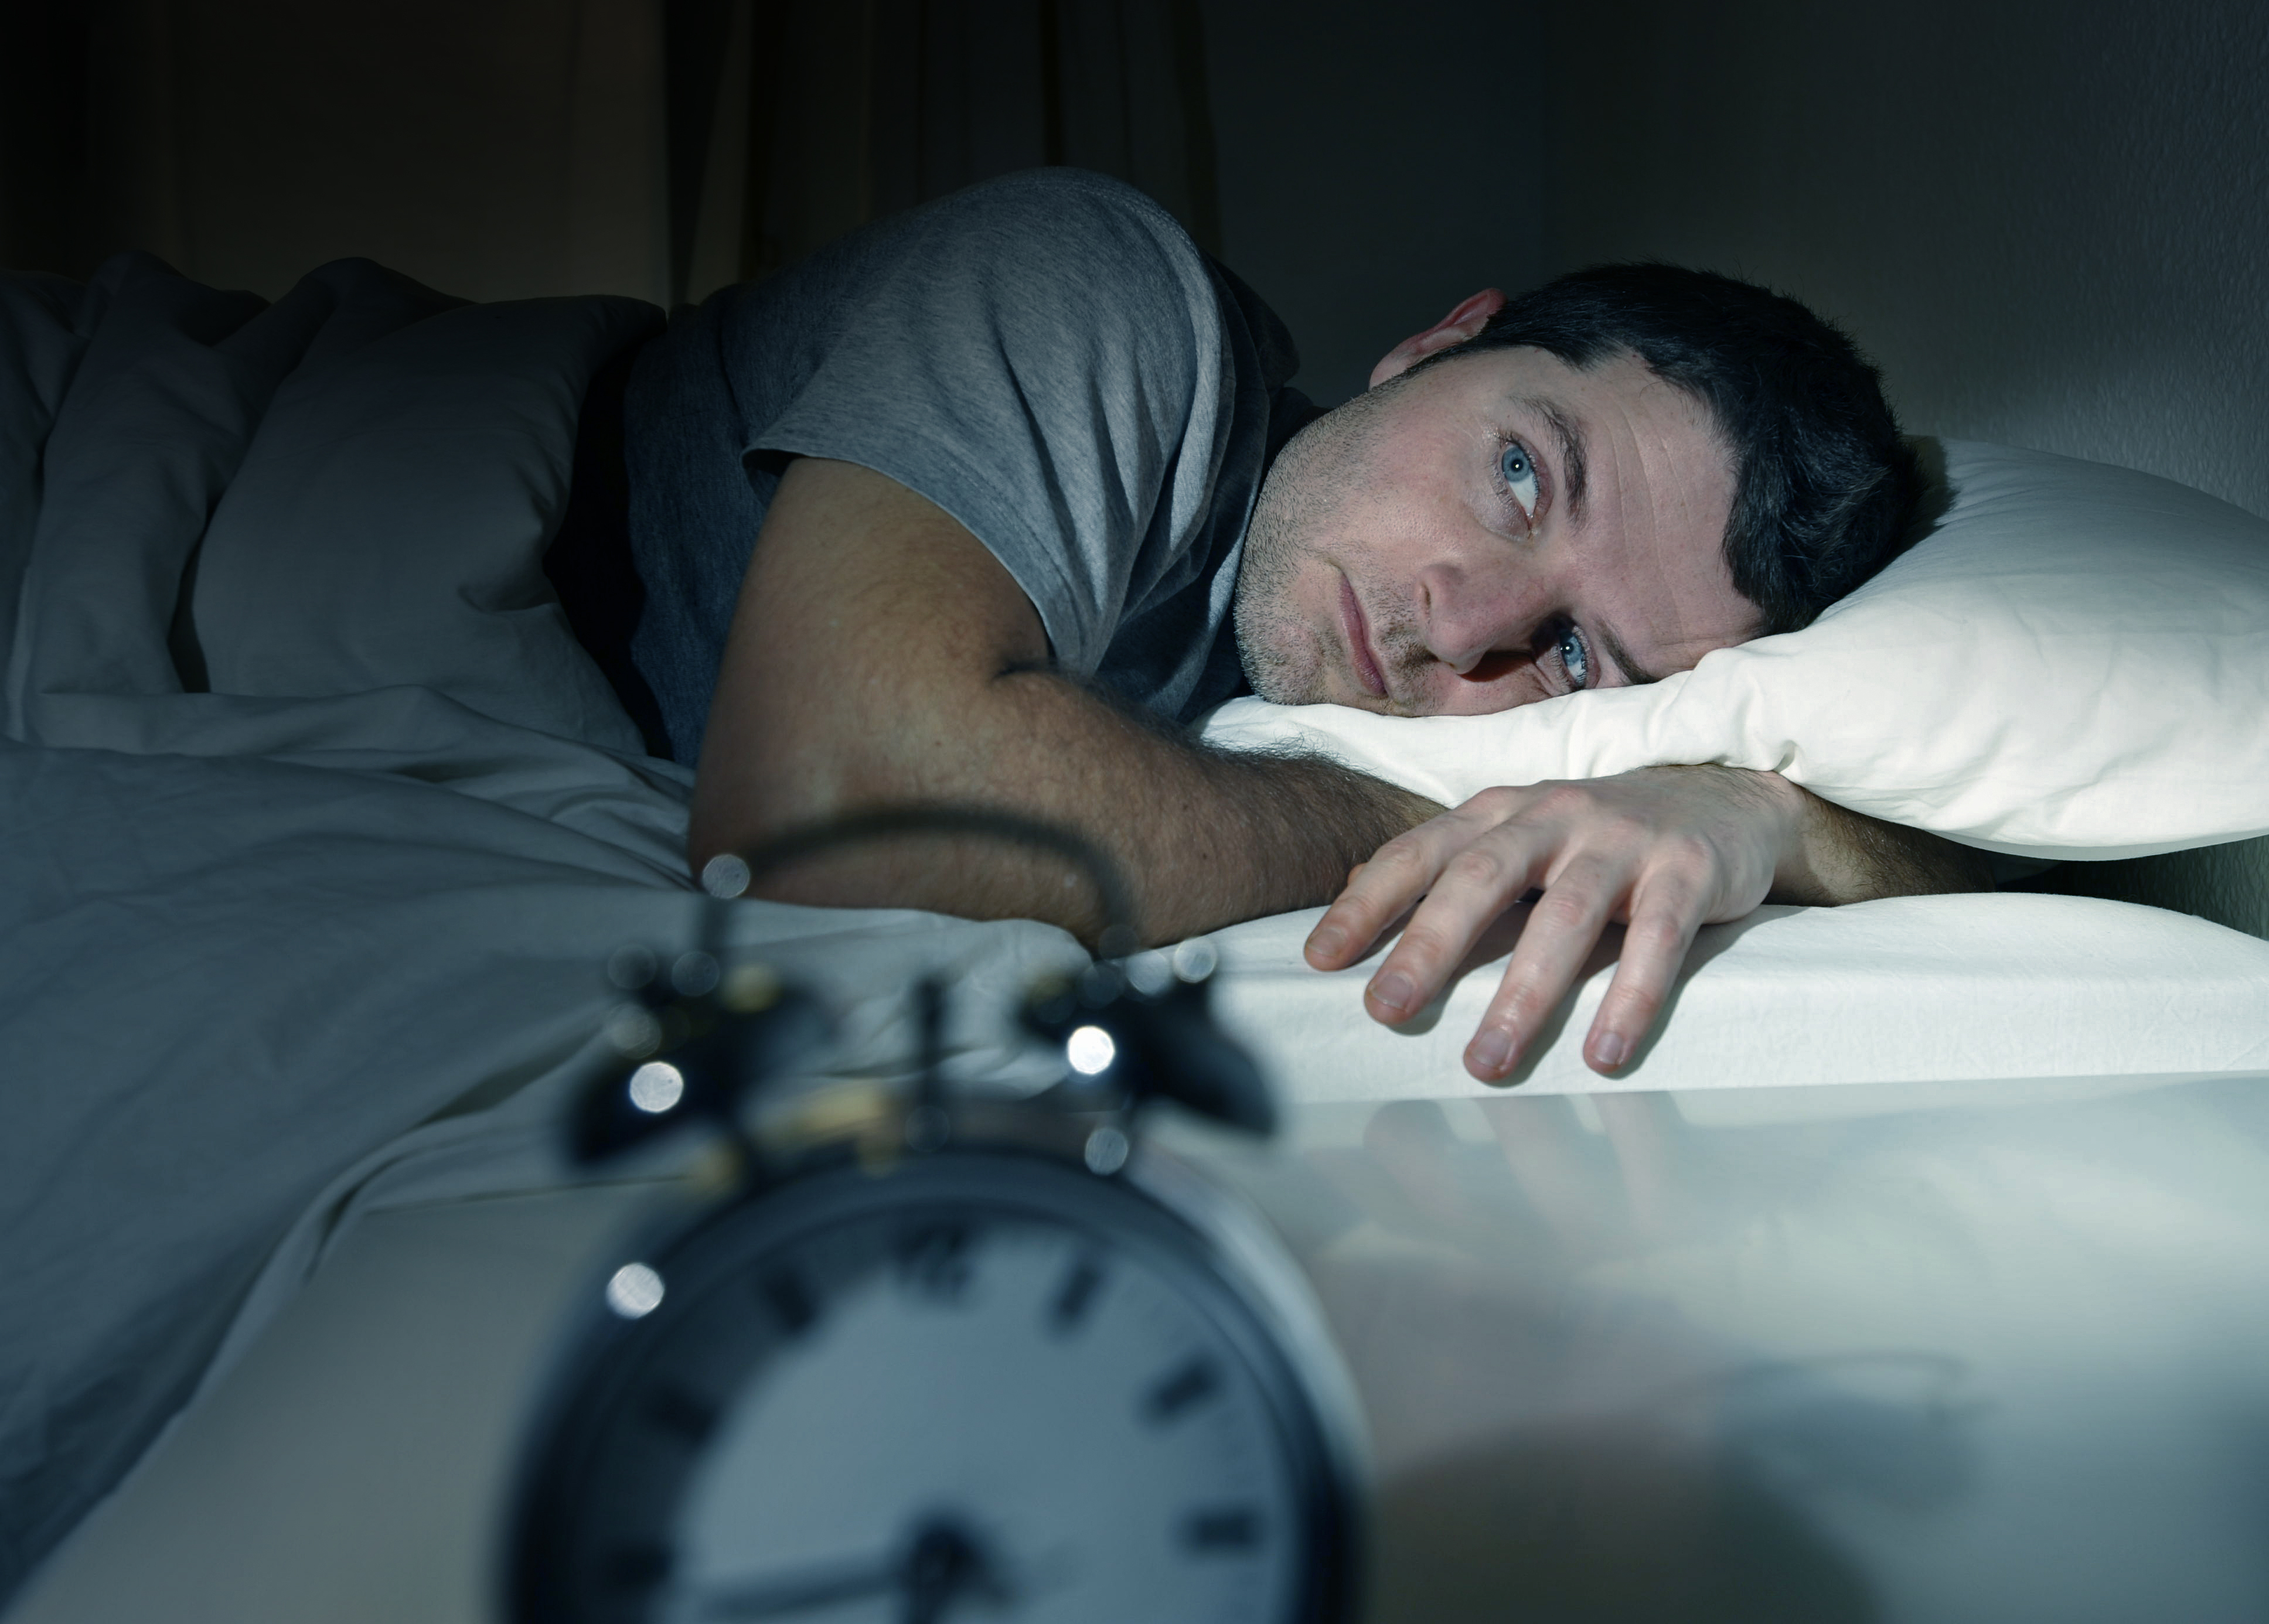 Difficulty Holding Eyes Open Bigstock Man In Bed With Eyes Opened Su